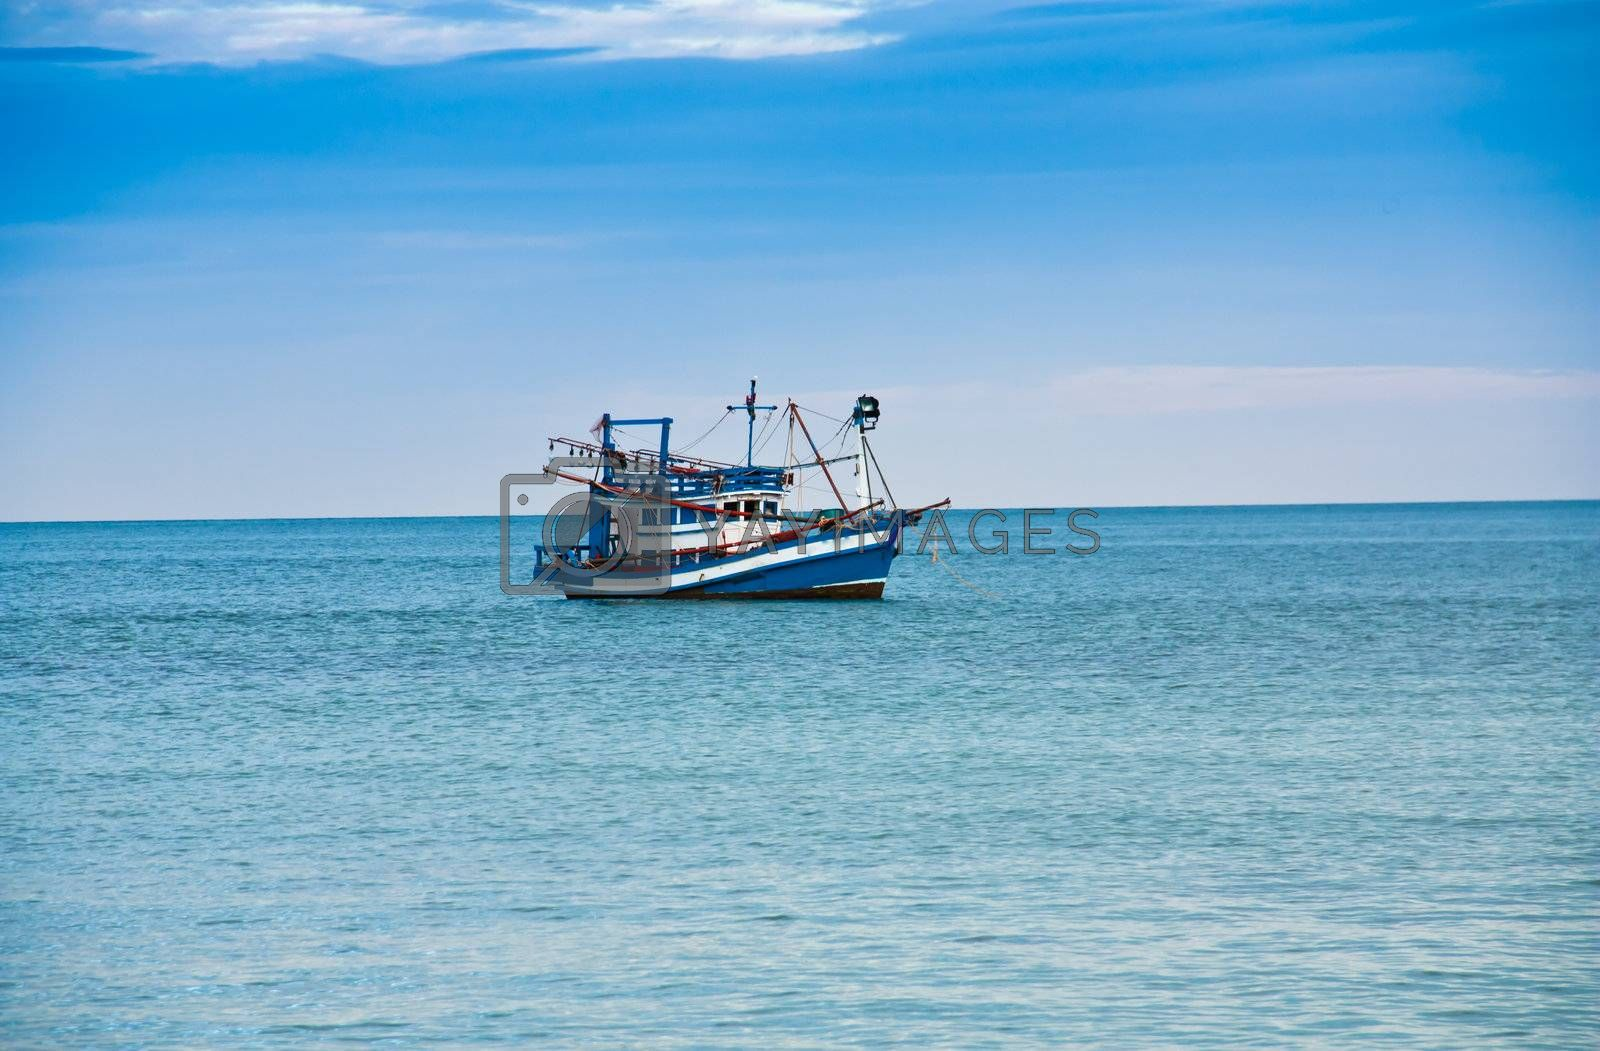 TRAT, THAILAND : Fishing boats in the sea in Thailand.